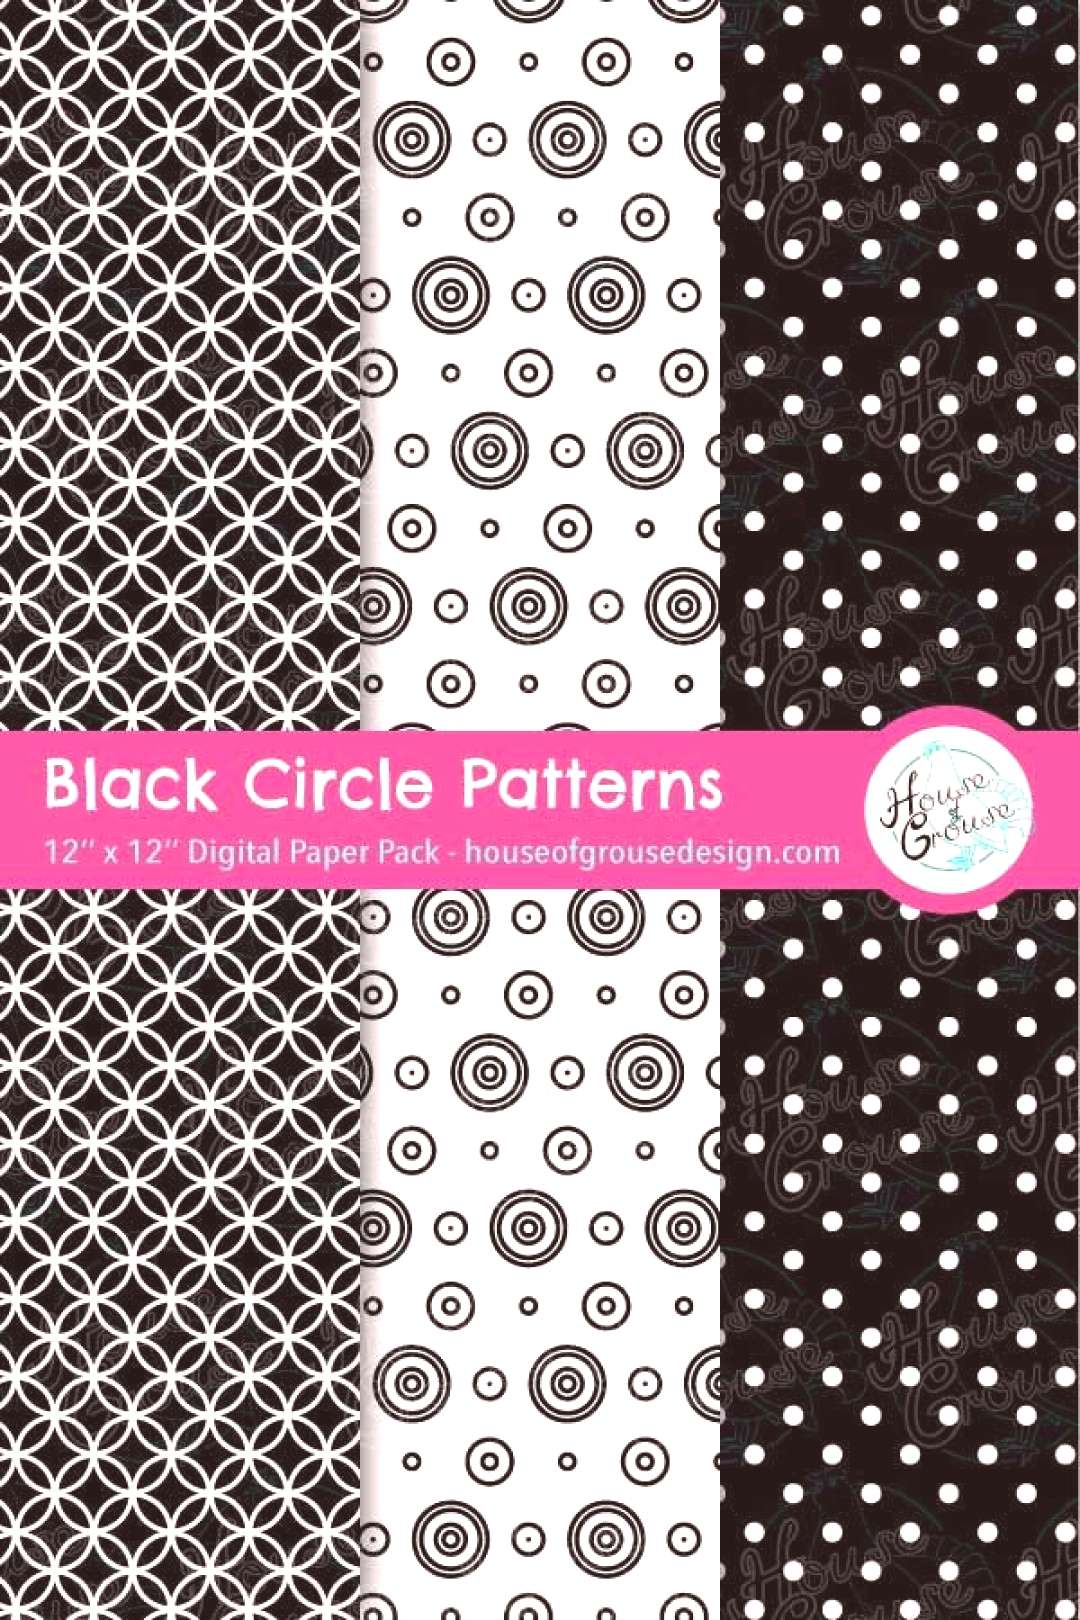 Black Circles Pattern Set Digital paper pack with Scandinavian style circular pattern designs in bl